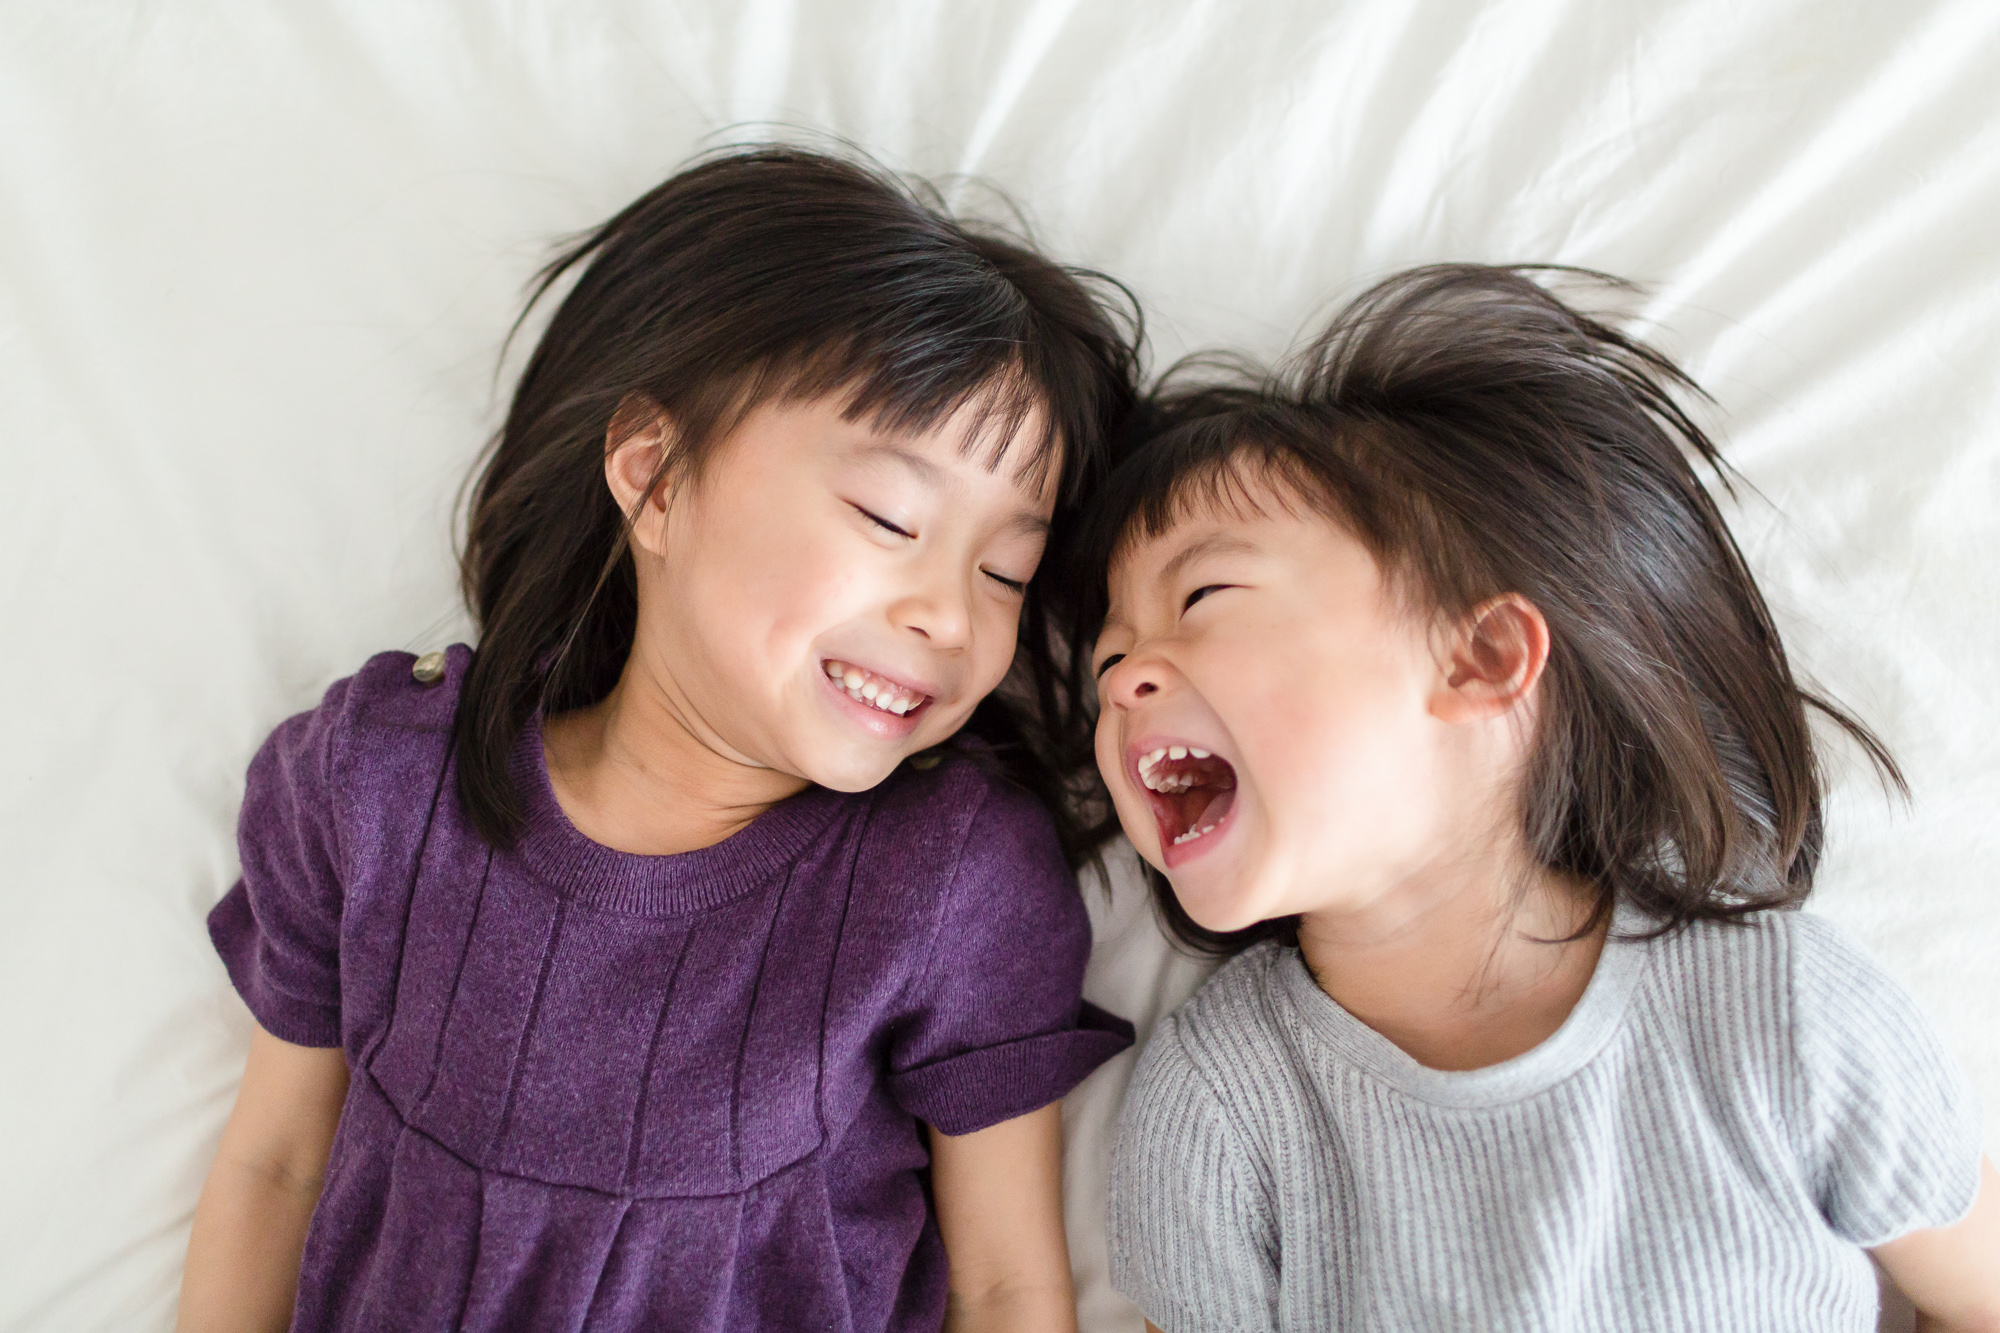 Two sisters laughing together